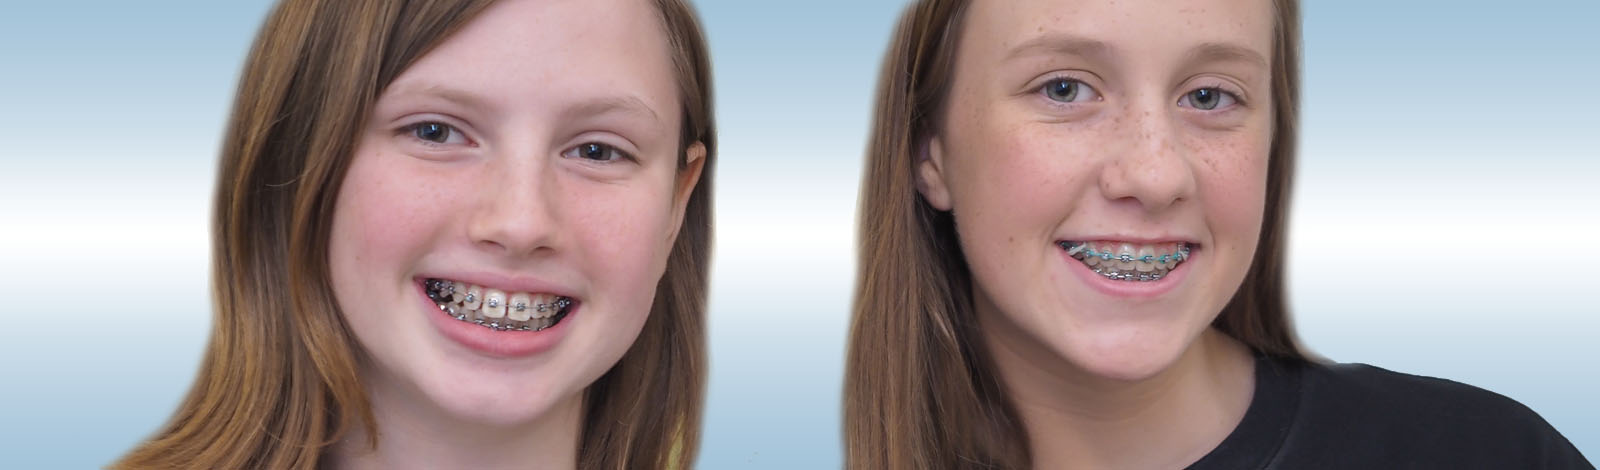 Faust Orthodontics Havertown Pa